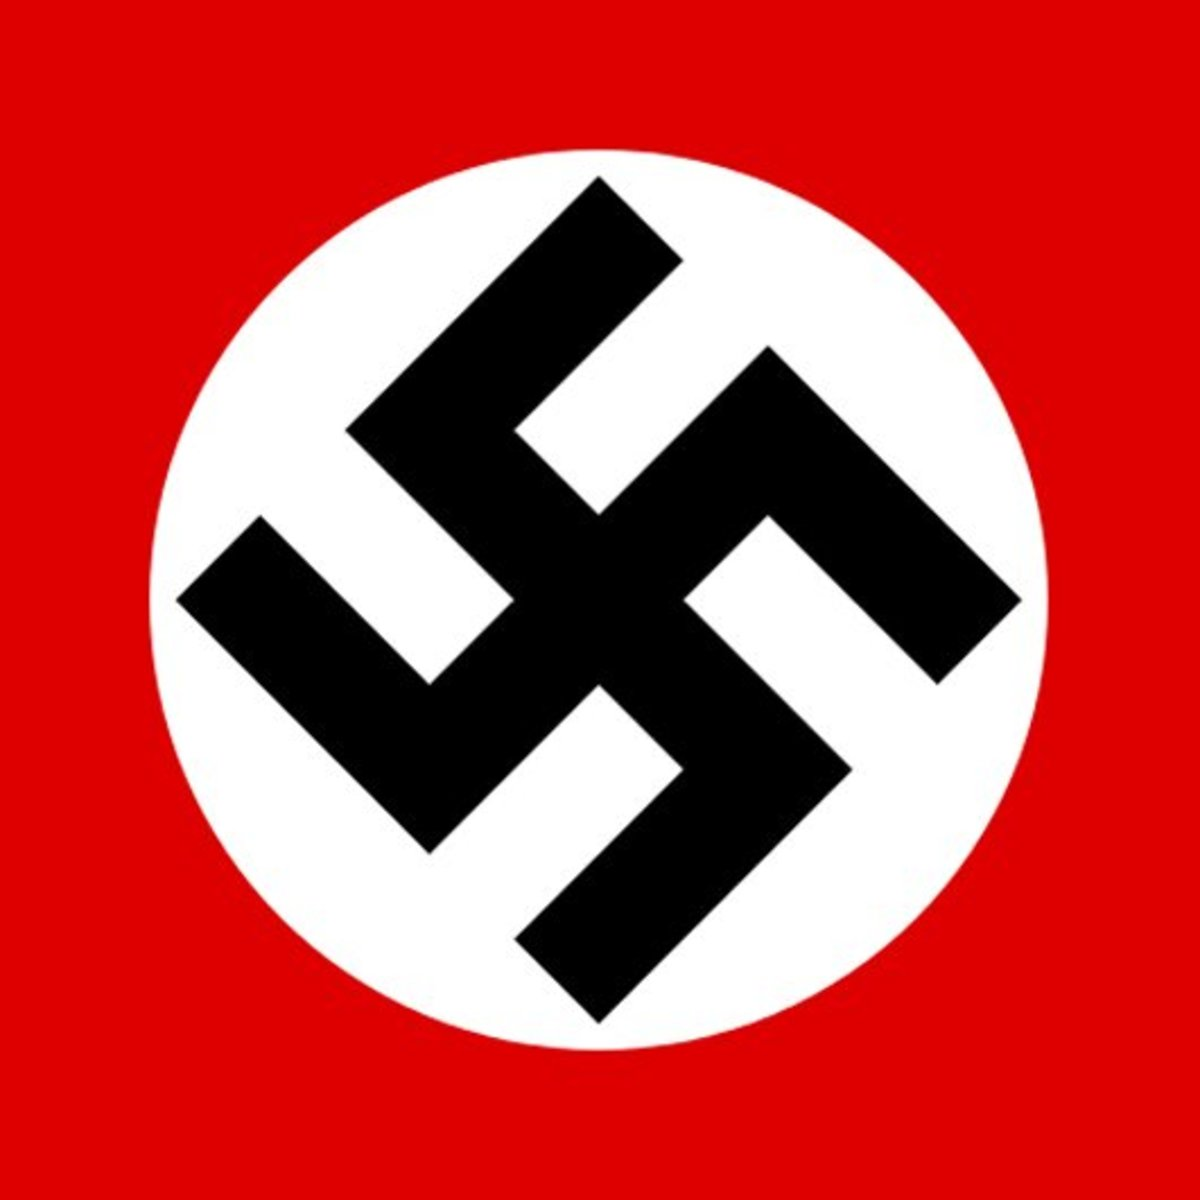 The Swastika - The Future for a Symbol of Great Good and Ultimate Evil